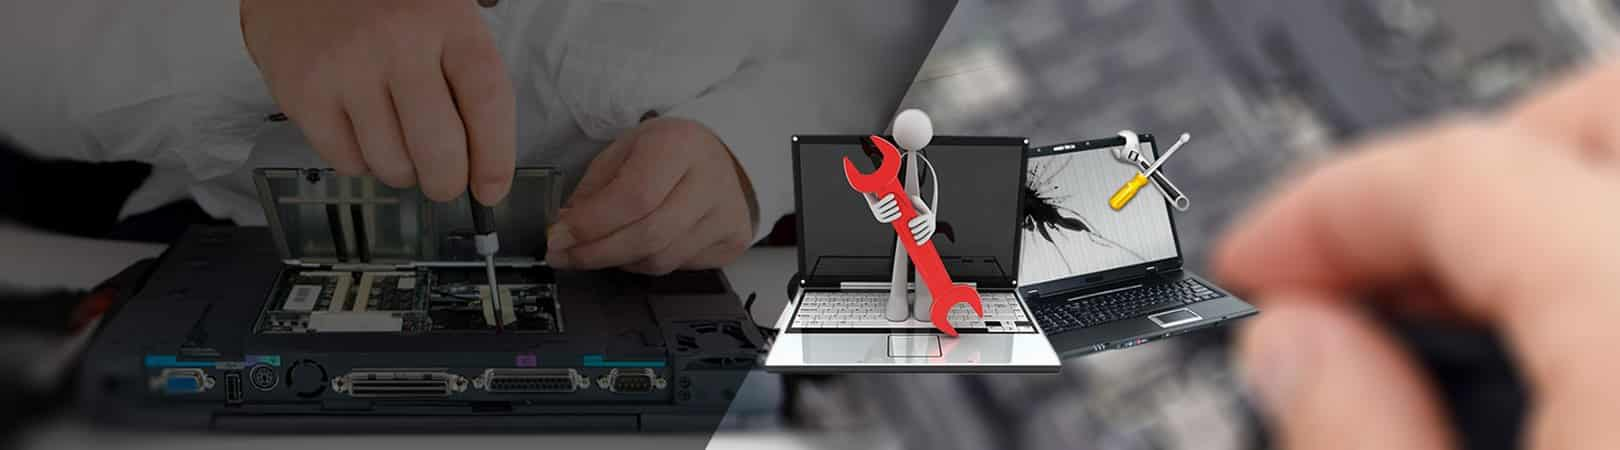 banner image - Toshiba Laptop Screen Replacement